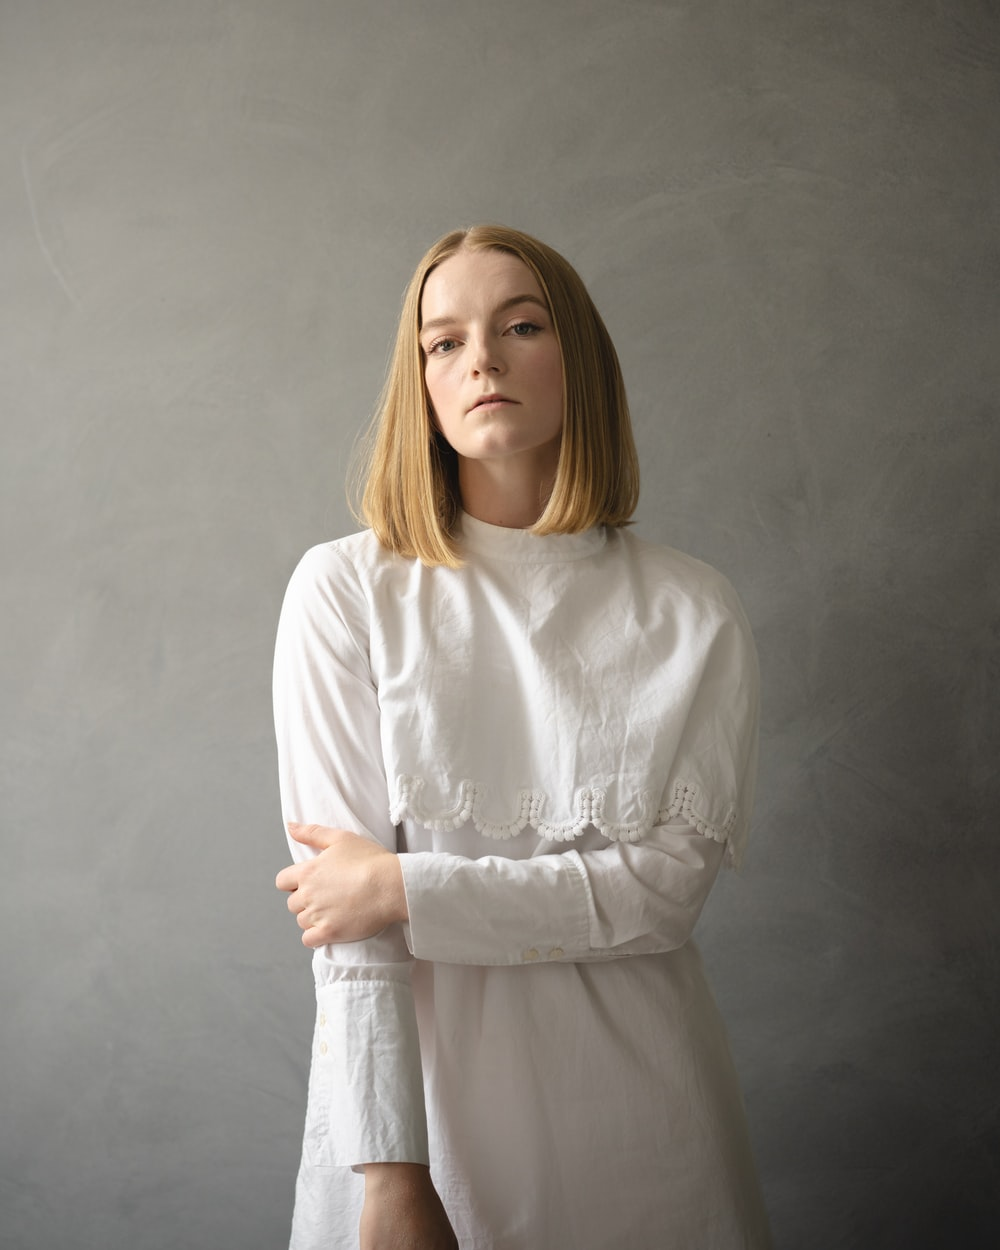 woman in white long sleeve shirt standing